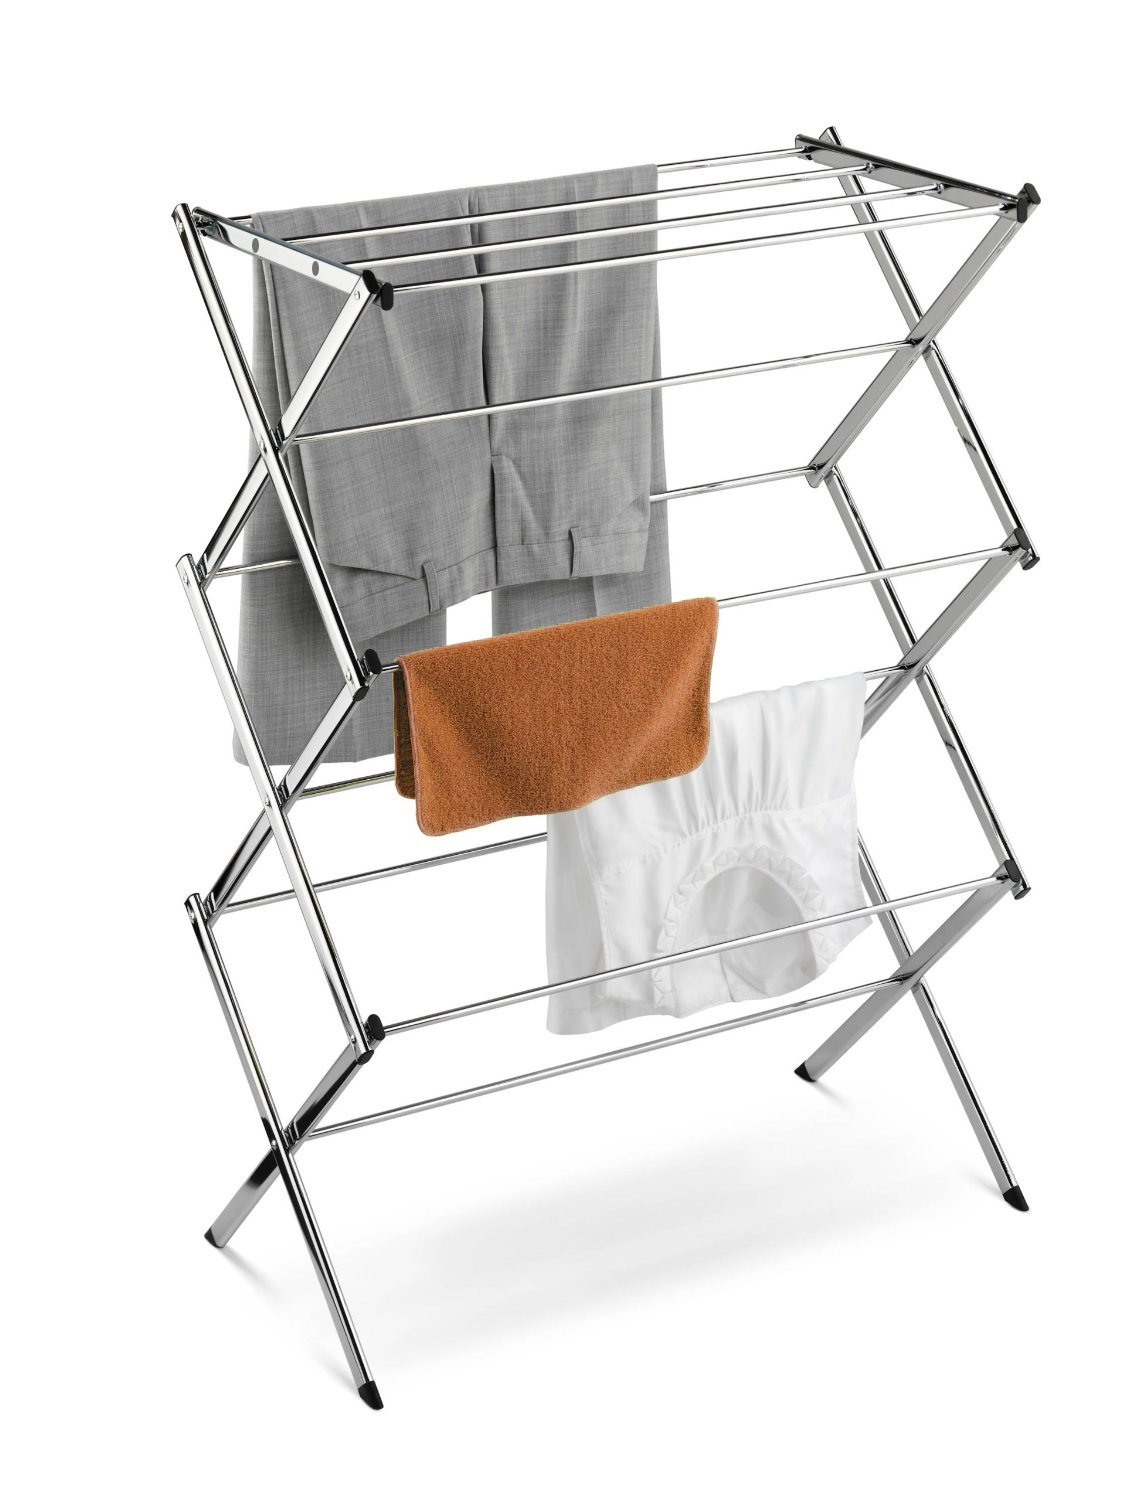 Foldable Laundry Drying Rack for Clothes Grey